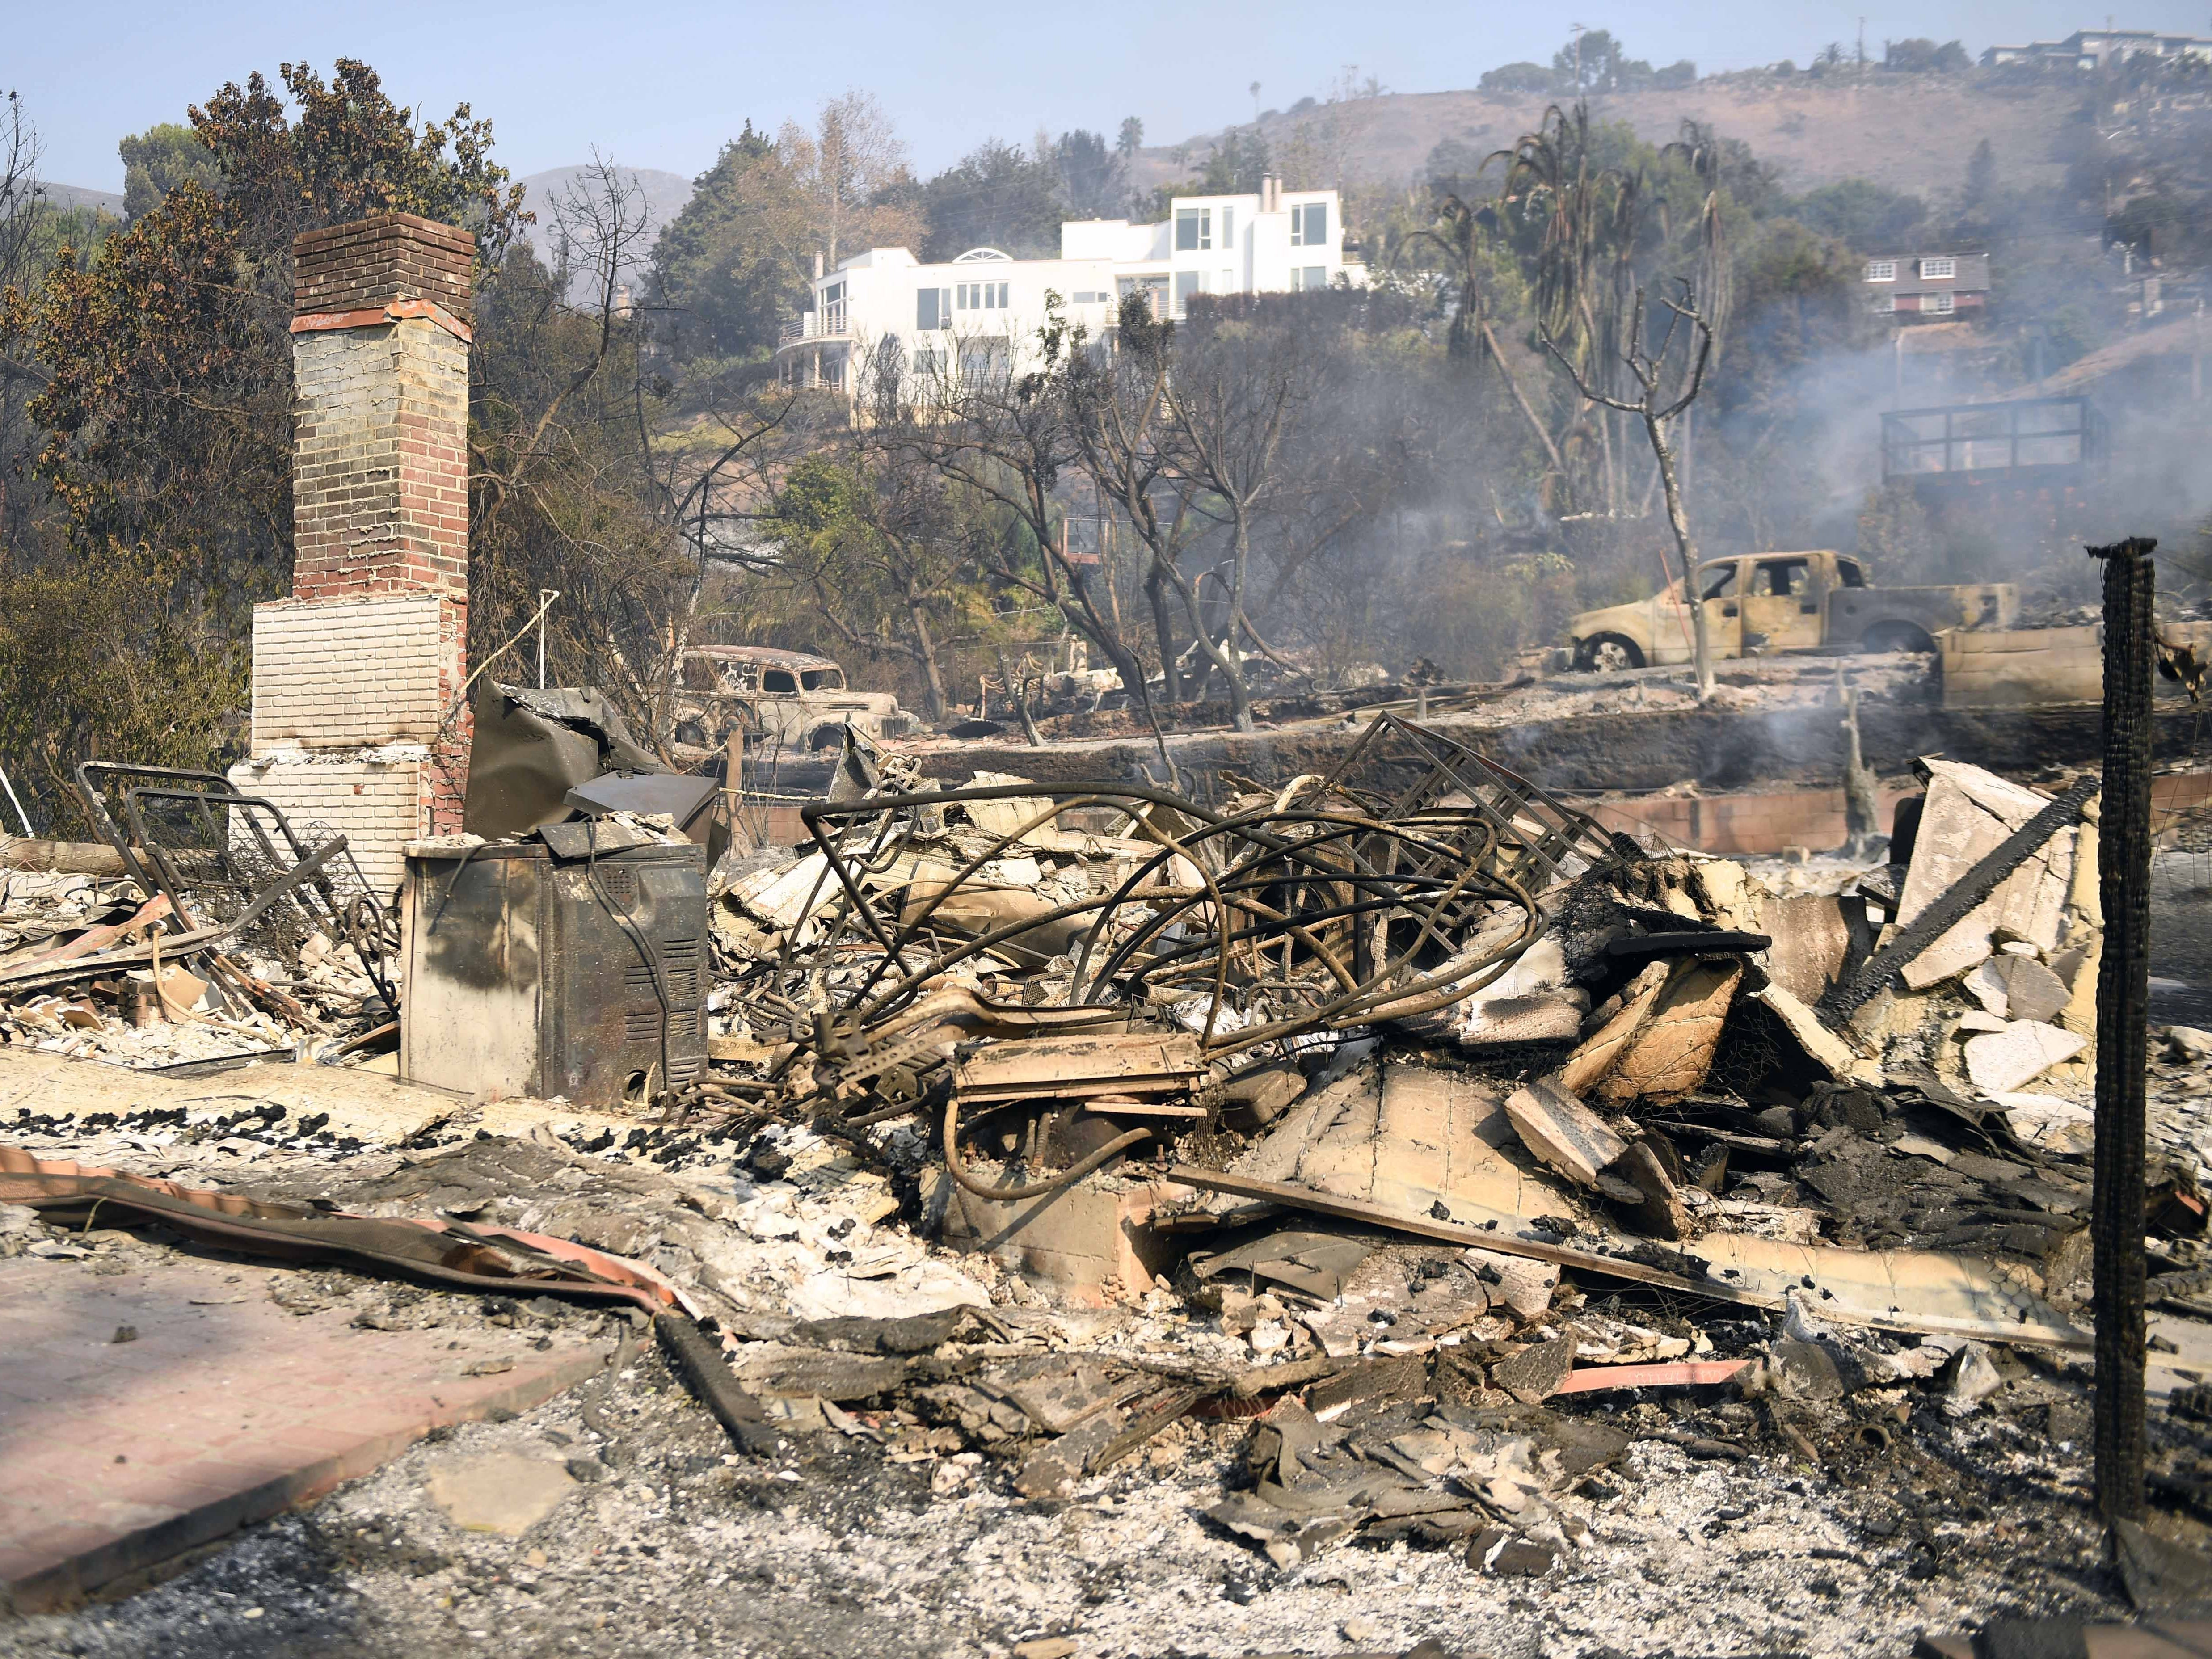 California's fire dilemma: Rebuild knowing same homes will burn again?